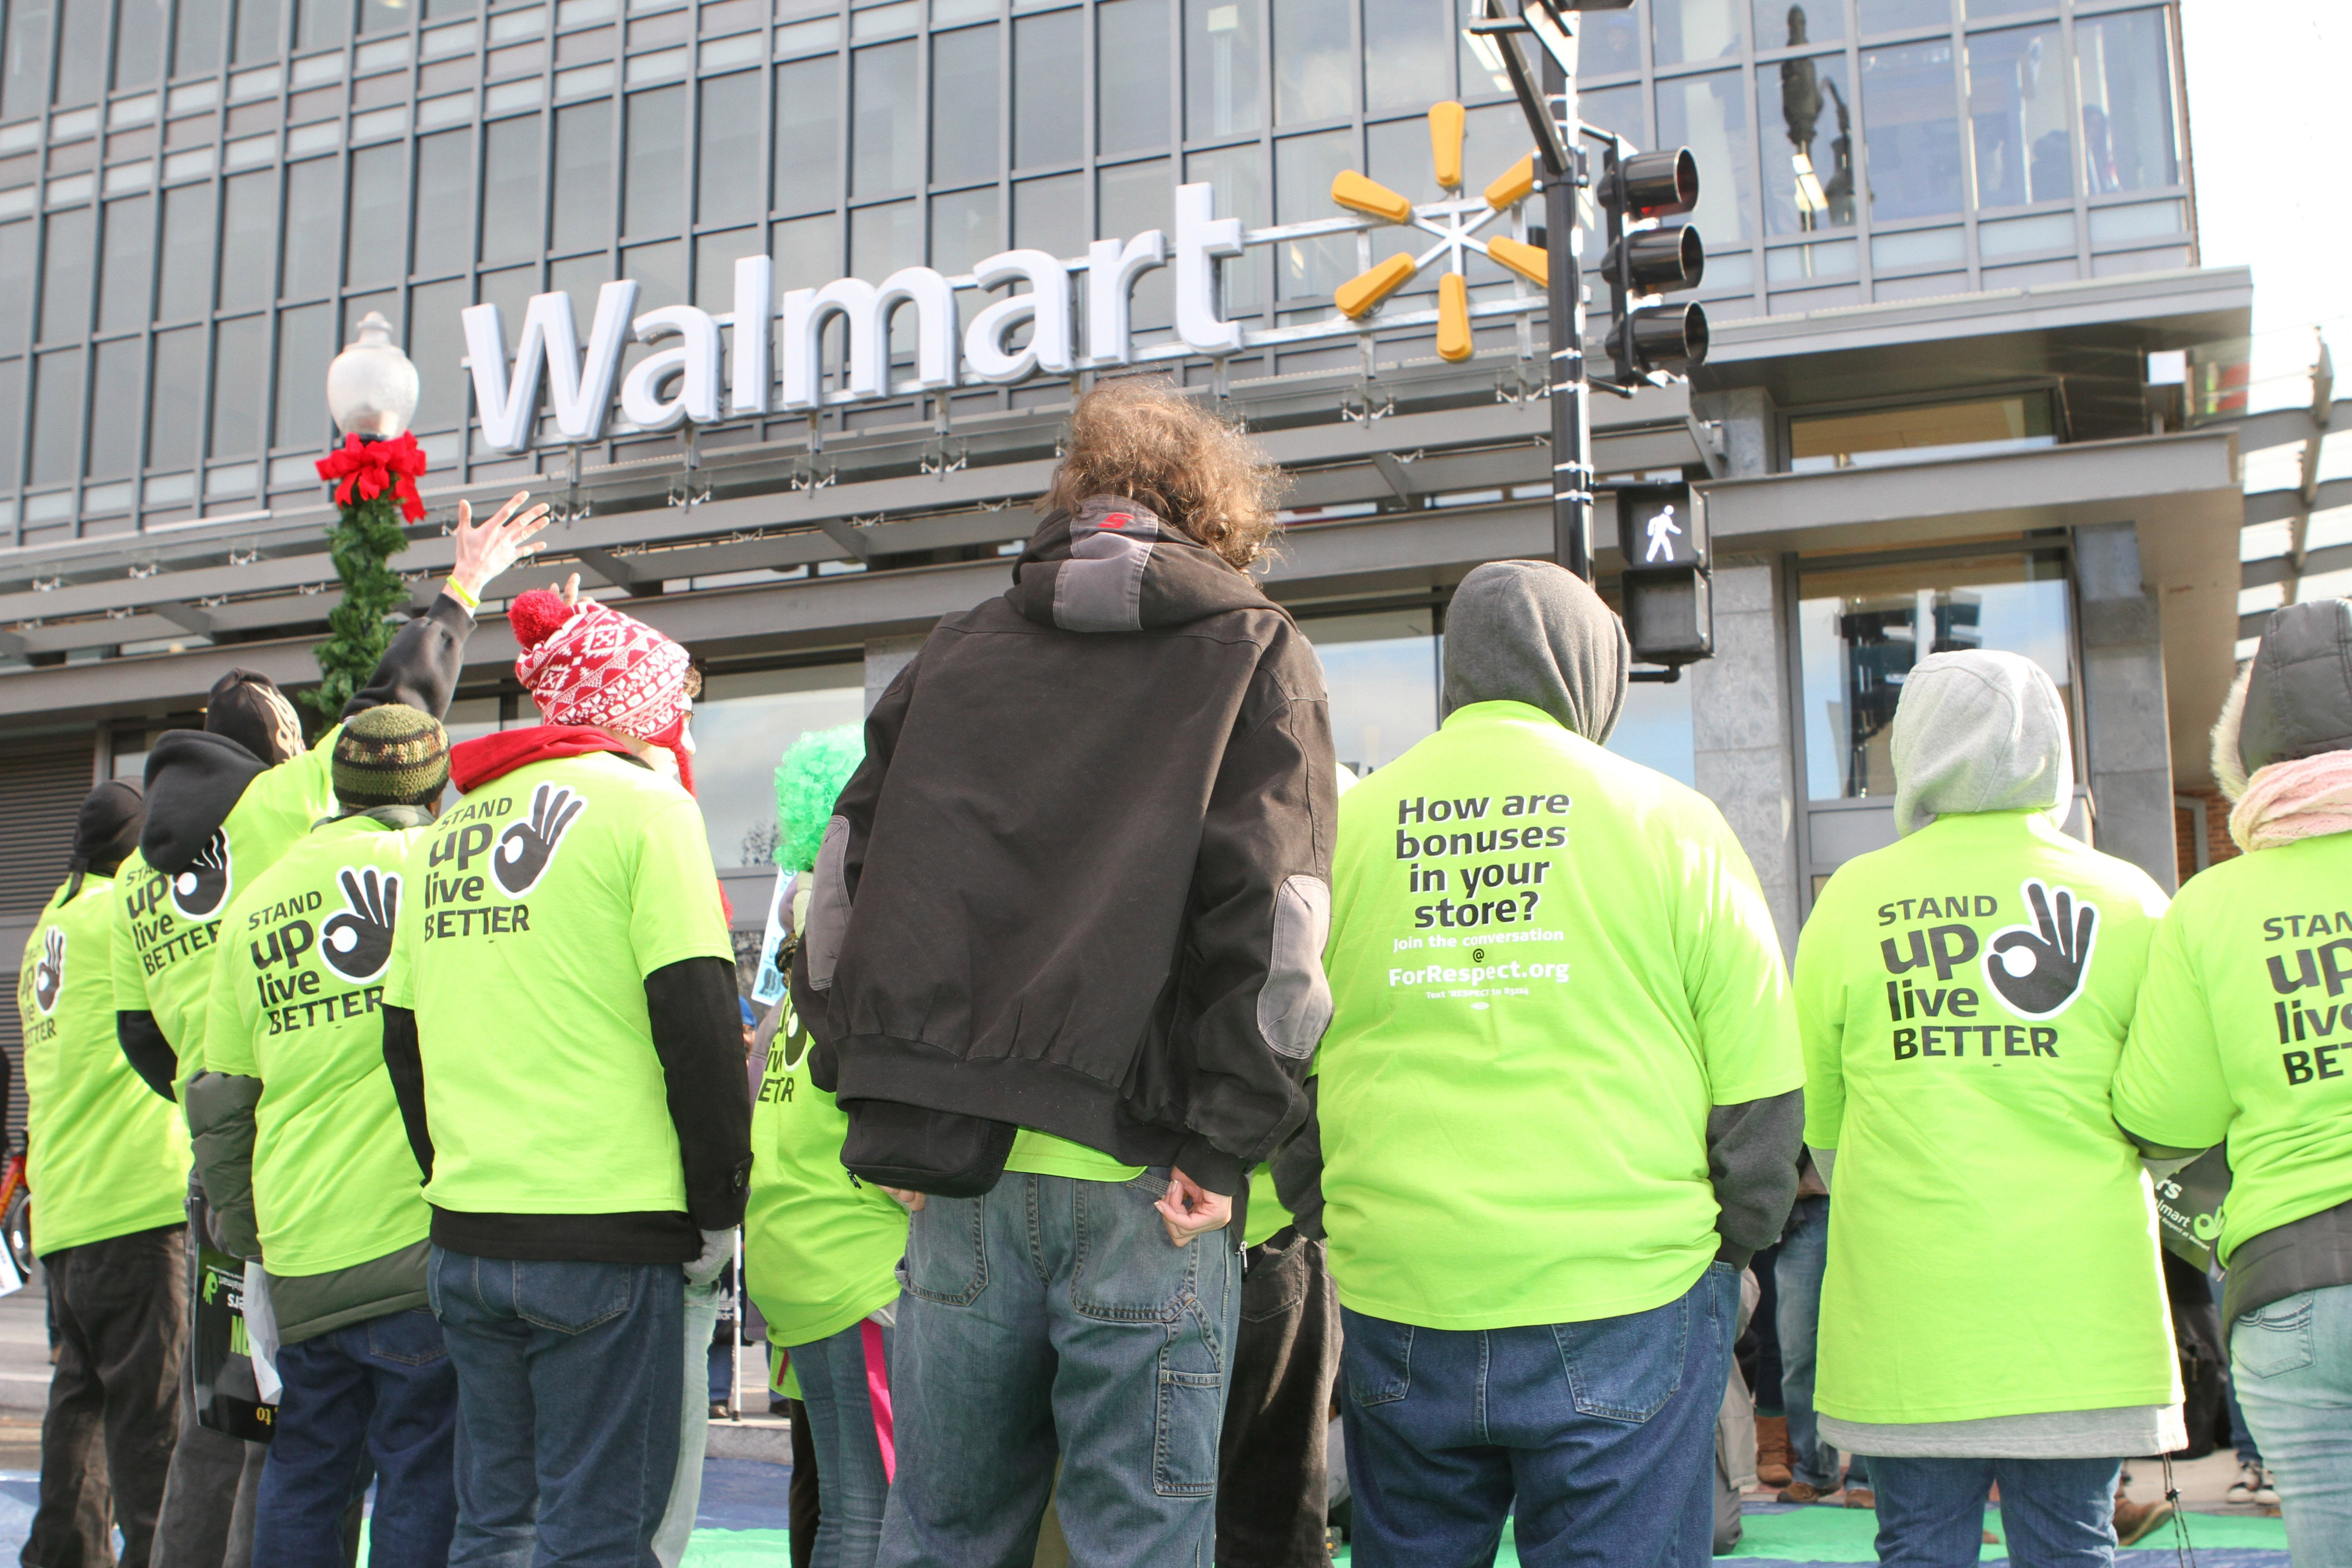 Walmart protesters demand better wages